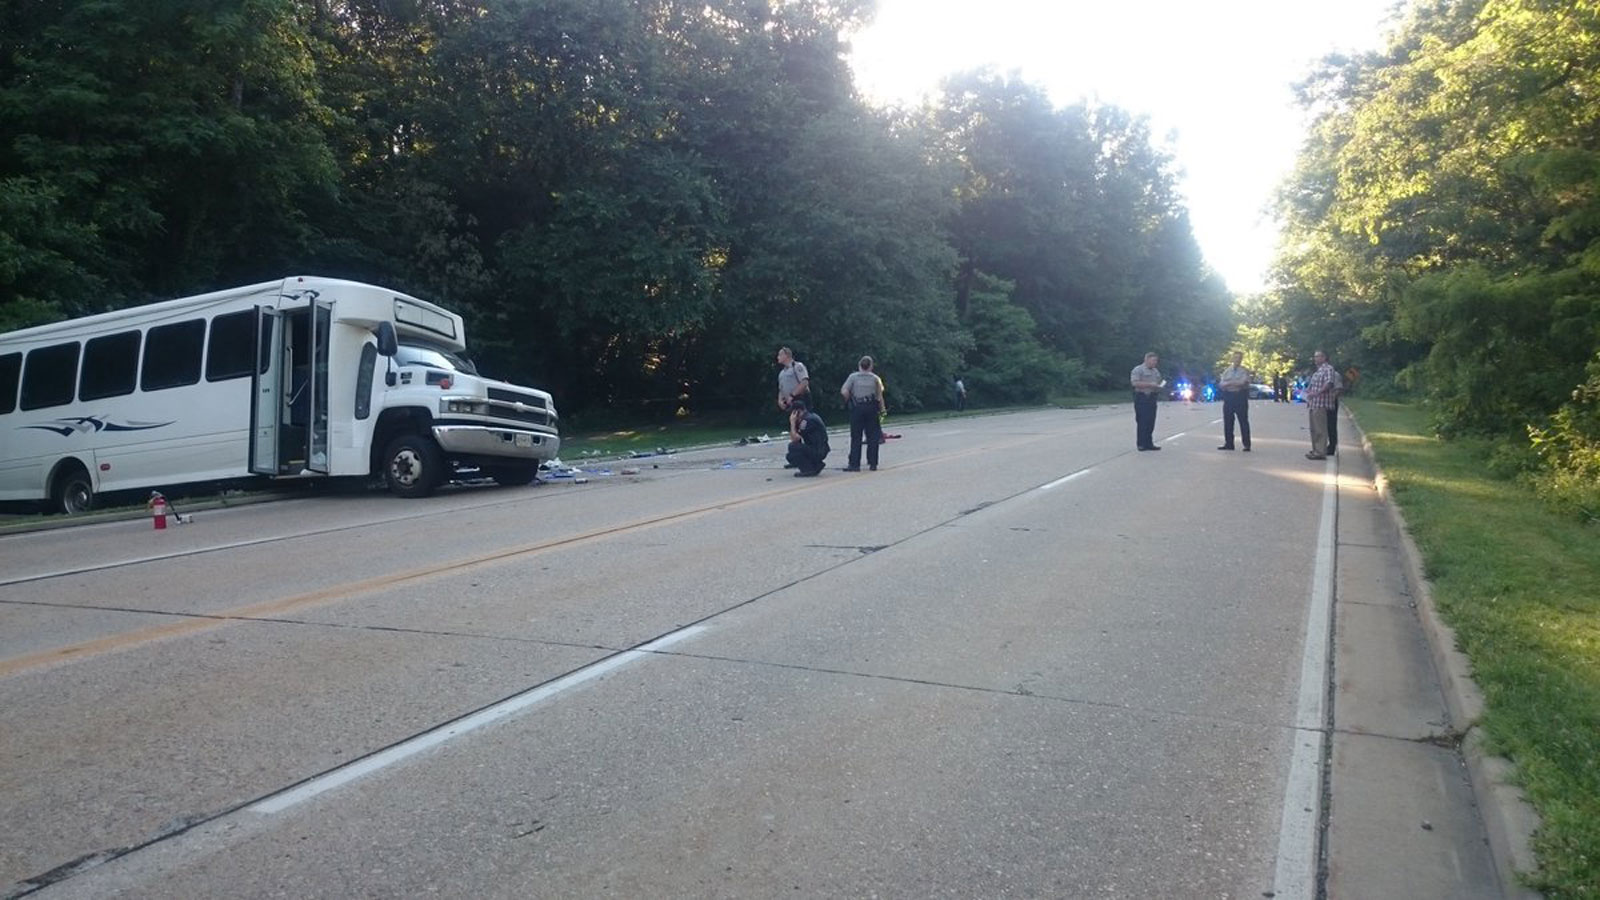 Investigators on the scene of the fatal bus crash on the George Washington Parkway. (Courtesy Fairfax County Police Department)